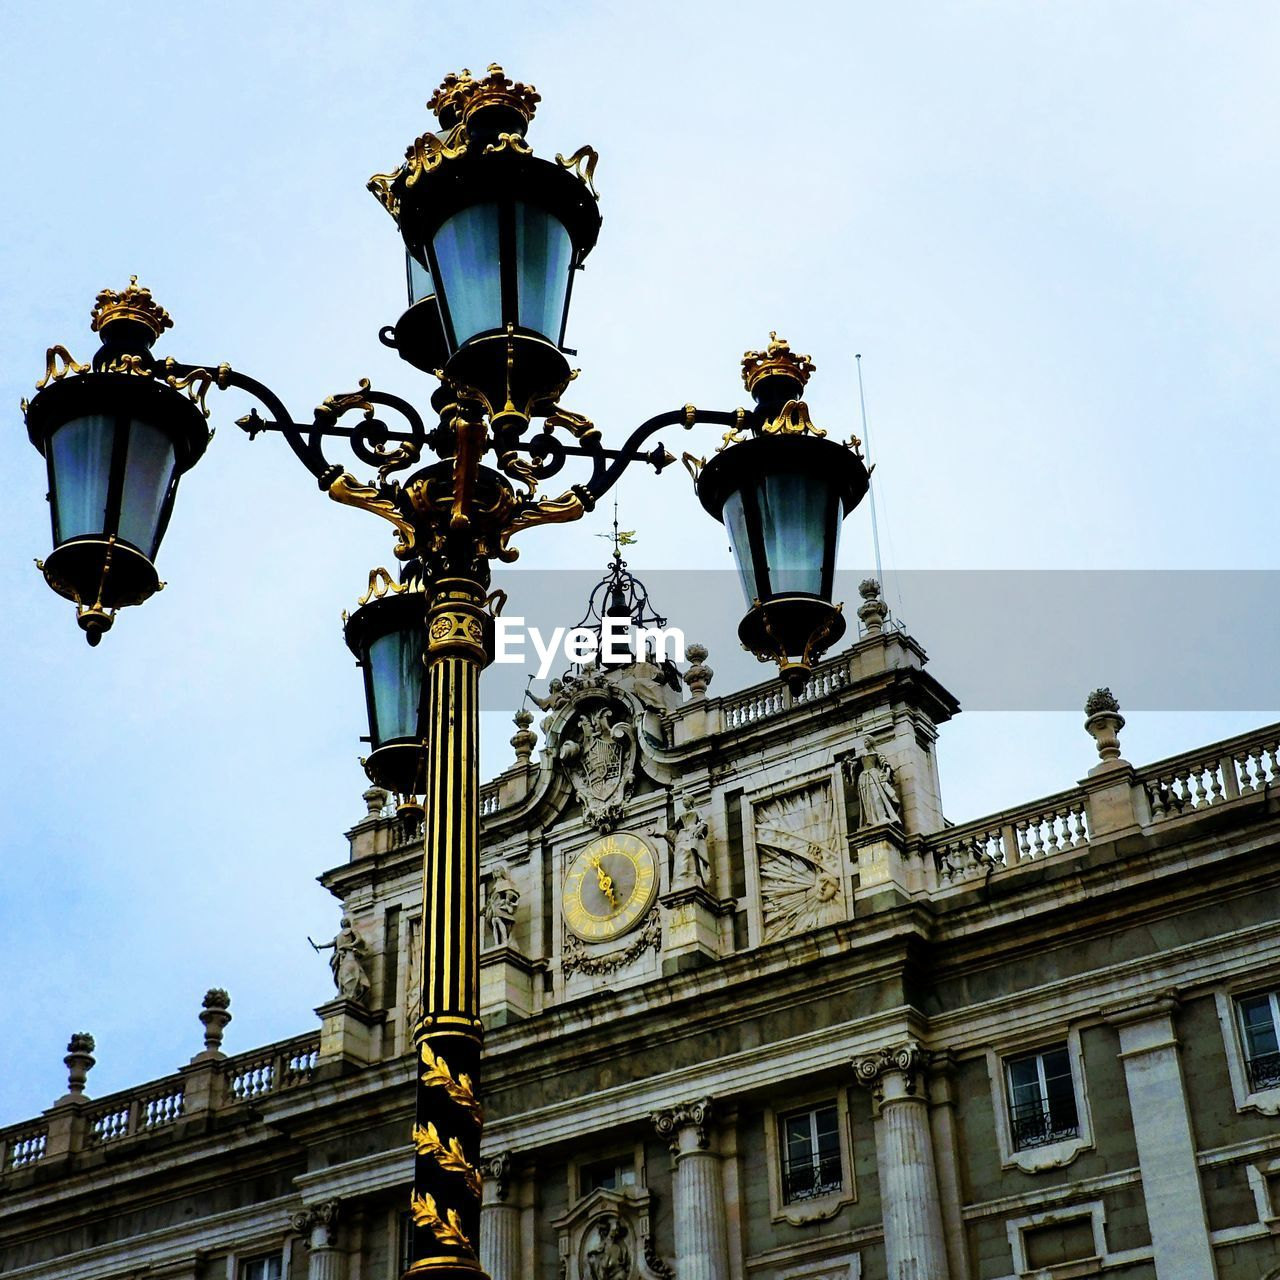 street light, low angle view, sky, lighting equipment, built structure, street, architecture, building exterior, nature, history, no people, the past, day, clear sky, city, outdoors, travel destinations, building, ornate, architectural column, antique